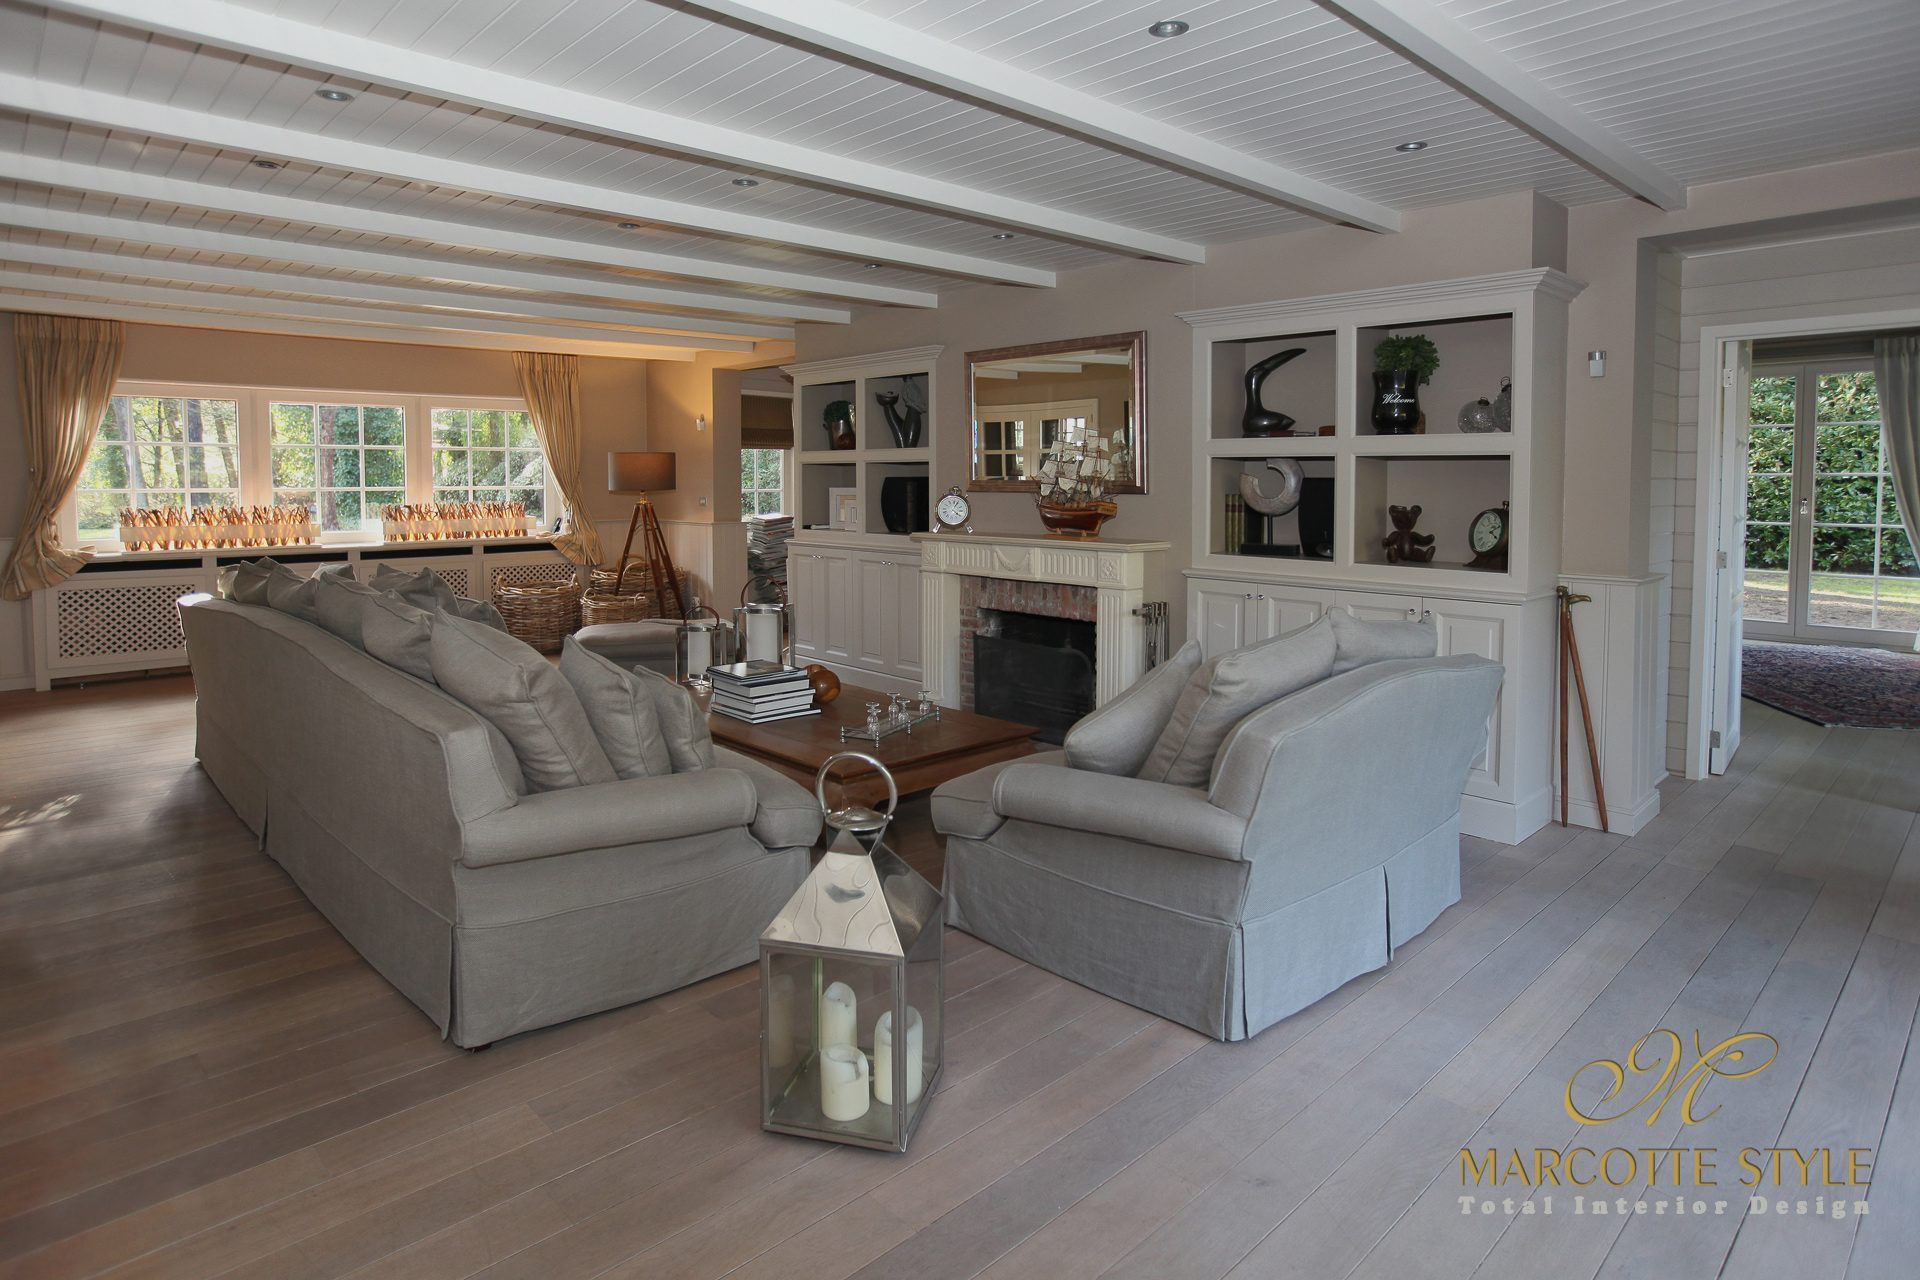 interior architect country style - Marcotte Style